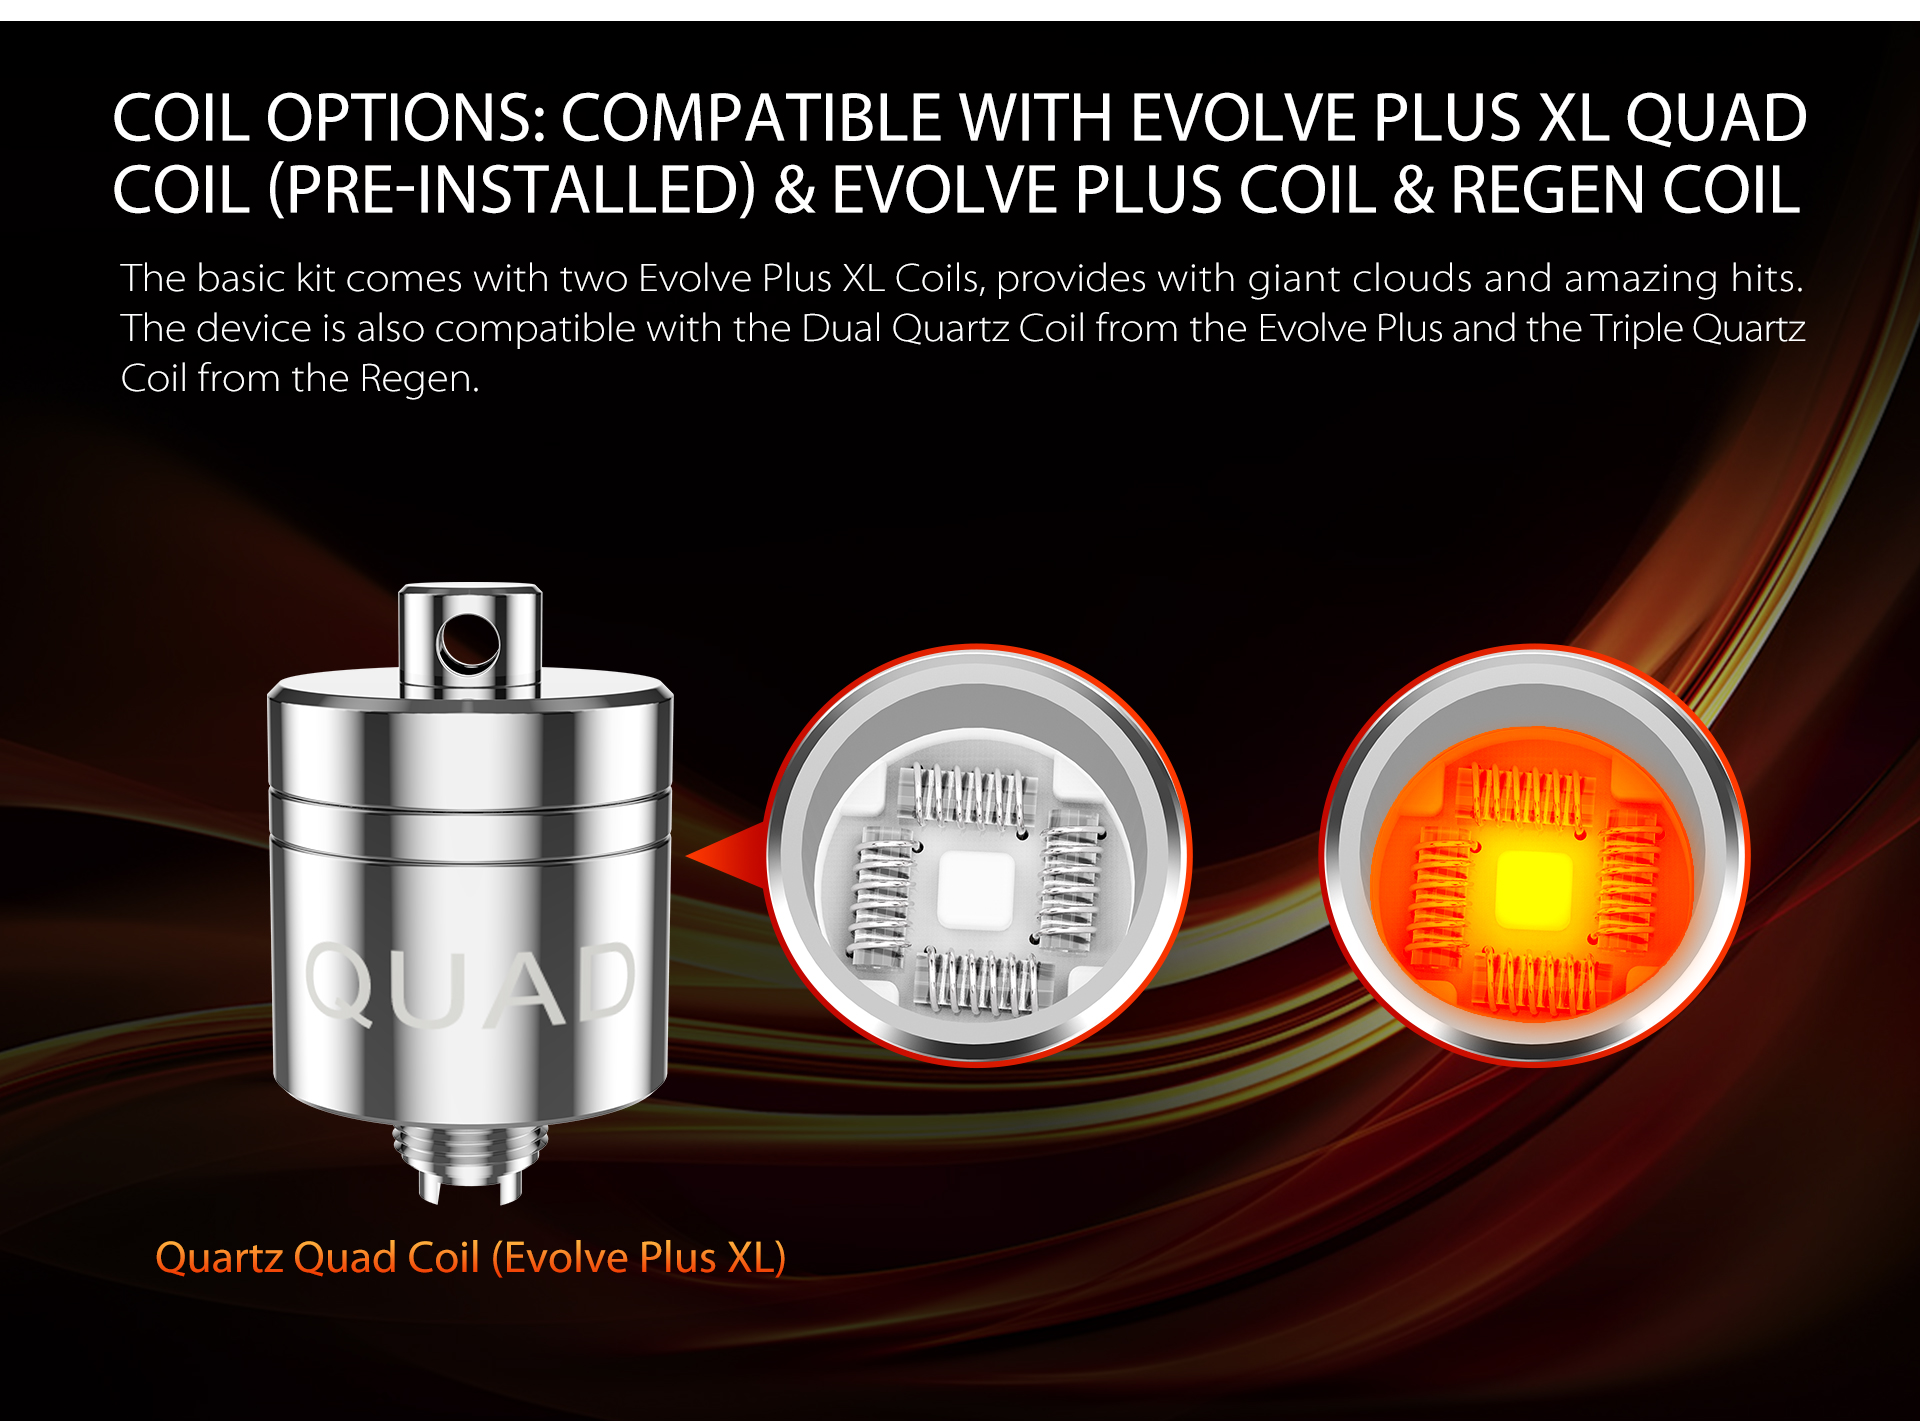 The Yocan Torch XL basic kit comes with two Evolve Plus XL Coils, provides with bigger clouds and amazing hits.